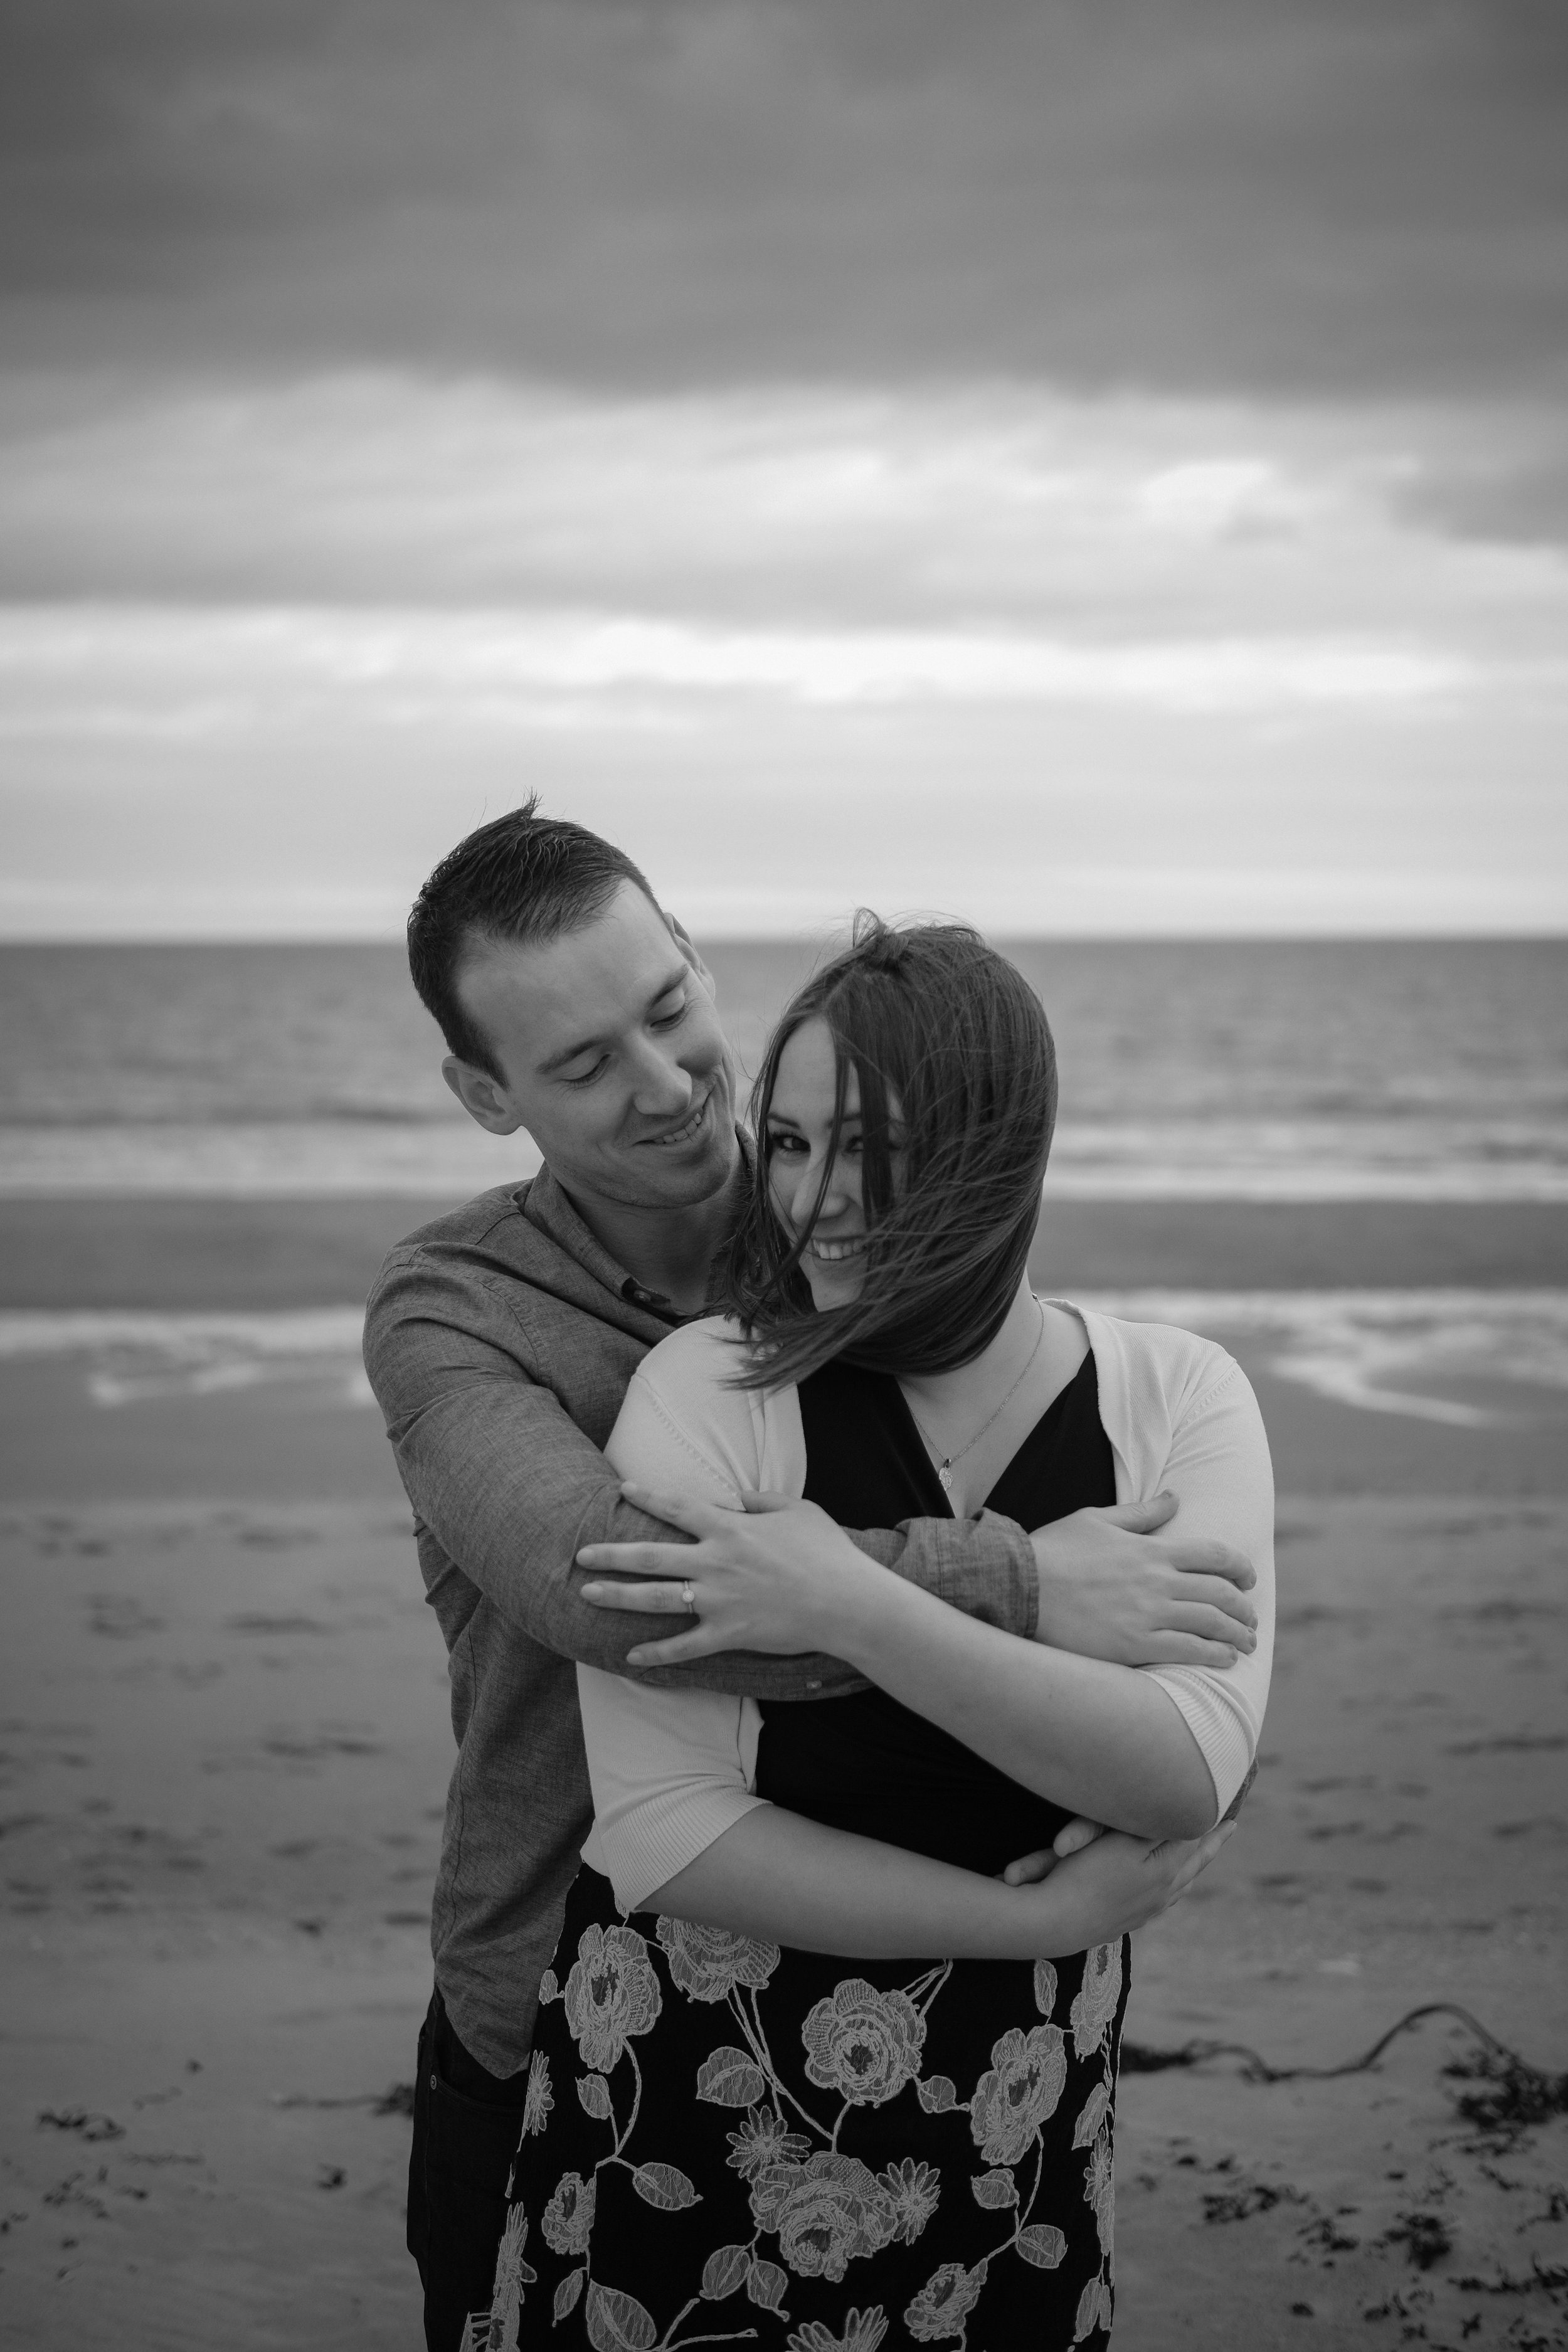 Black and white photo of couple cuddling on beach while girl looks at camera